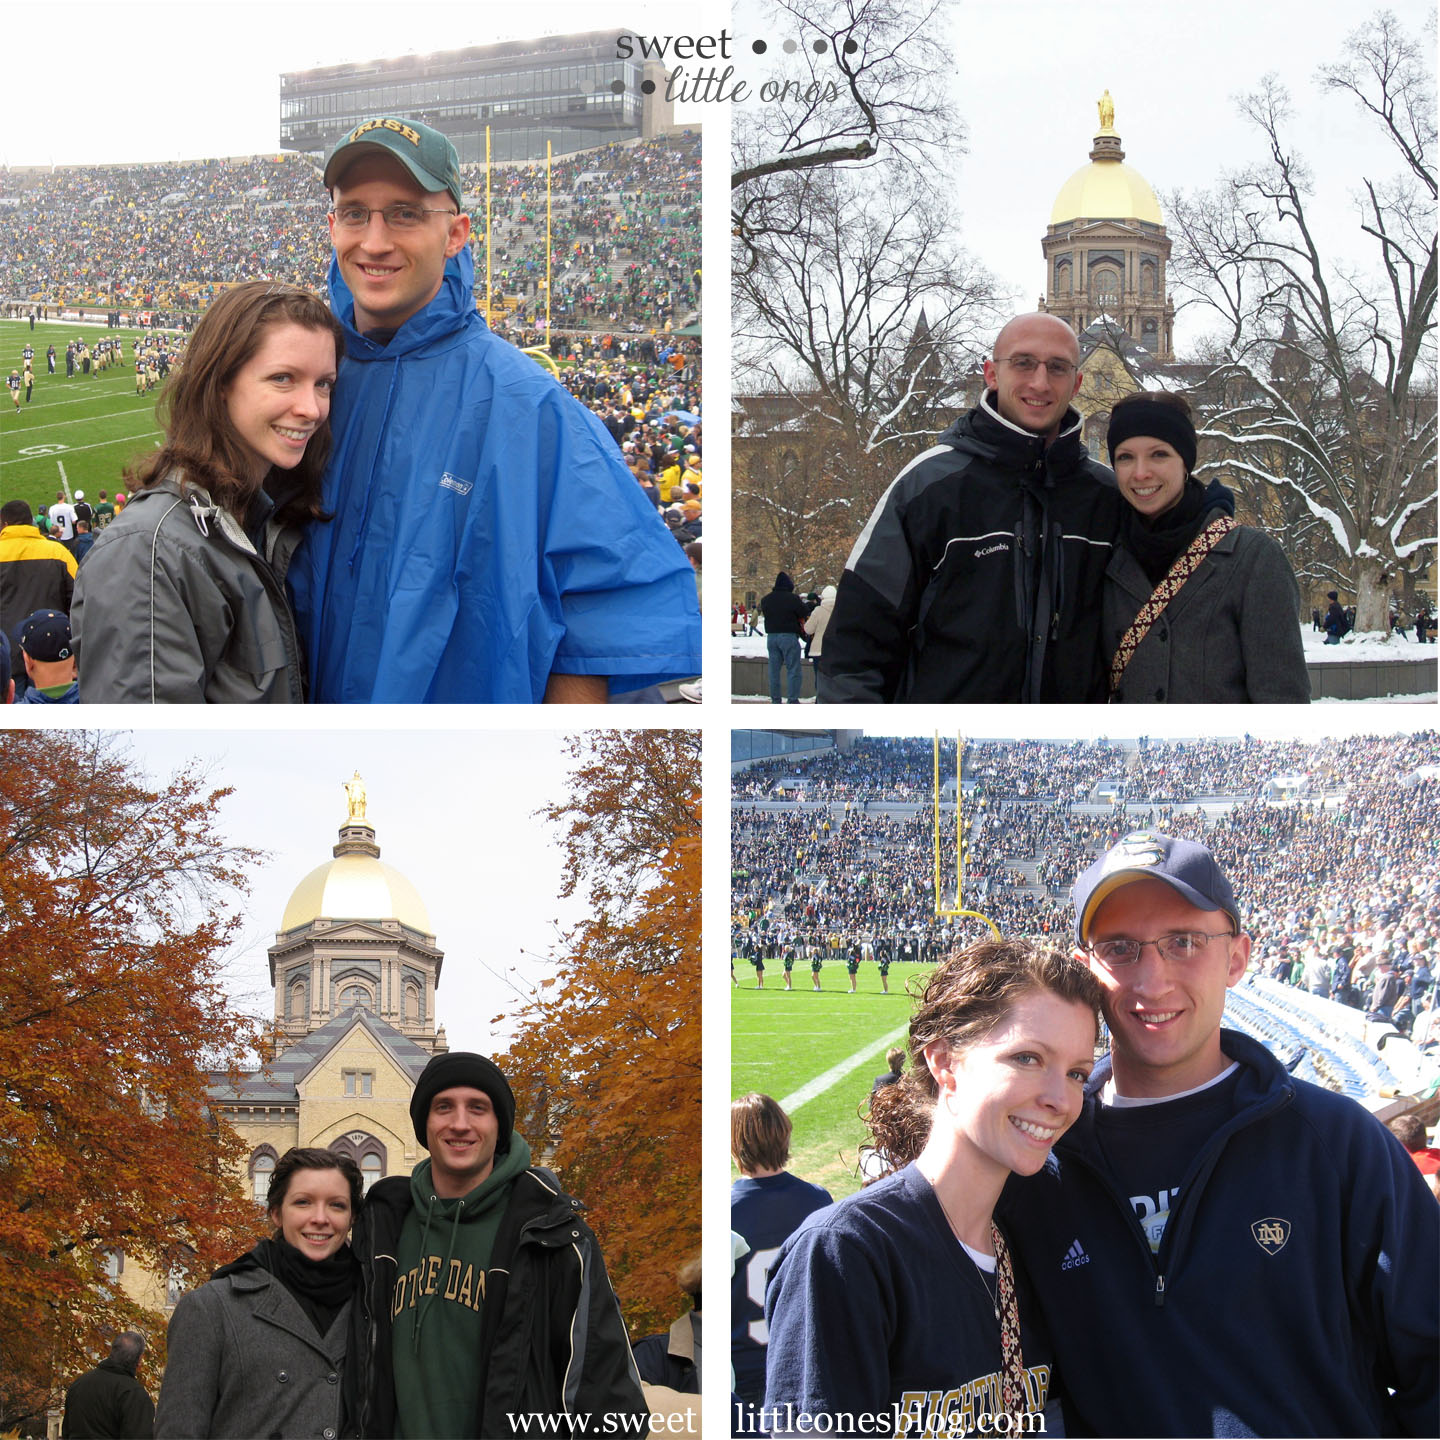 Notre Dame Game Day Traditions - www.sweetlittleonesblog.com